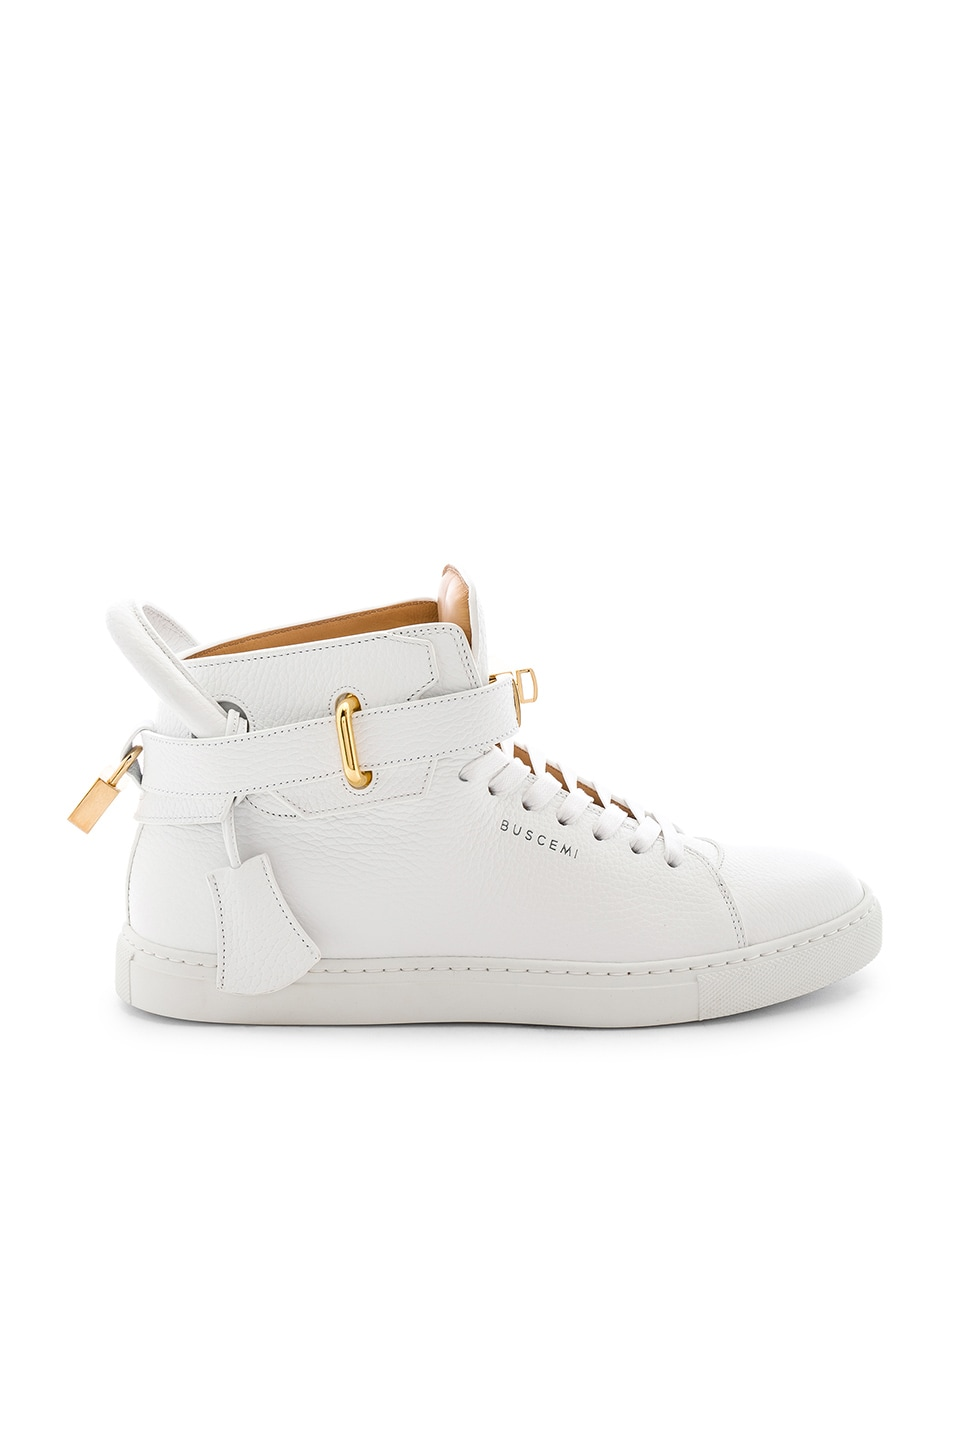 Image 2 of Buscemi 100MM High Top Pebbled Leather Sneakers in White